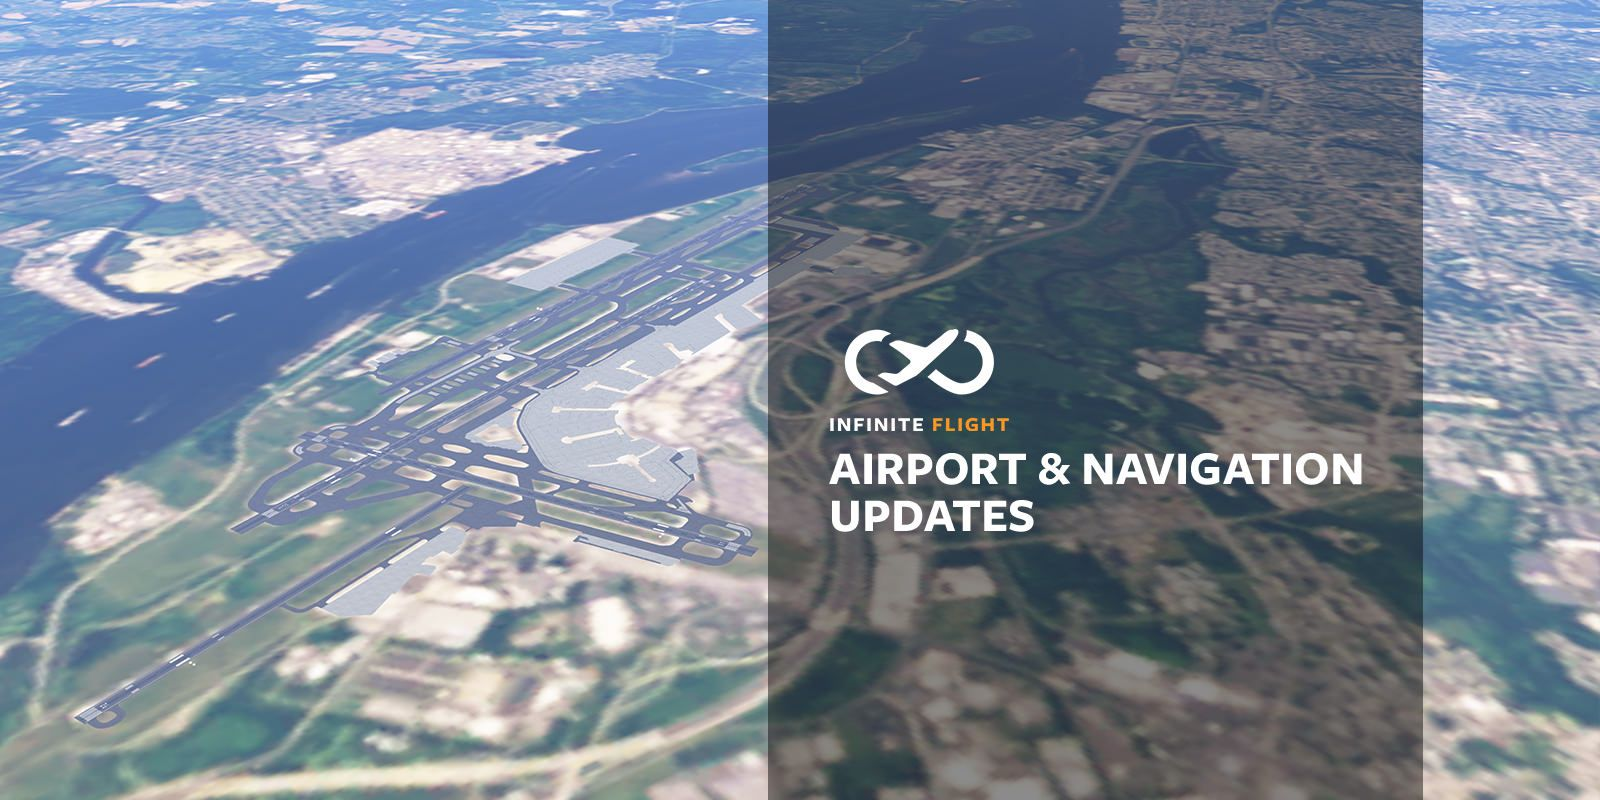 Airport and Navigation Updates - September 2020